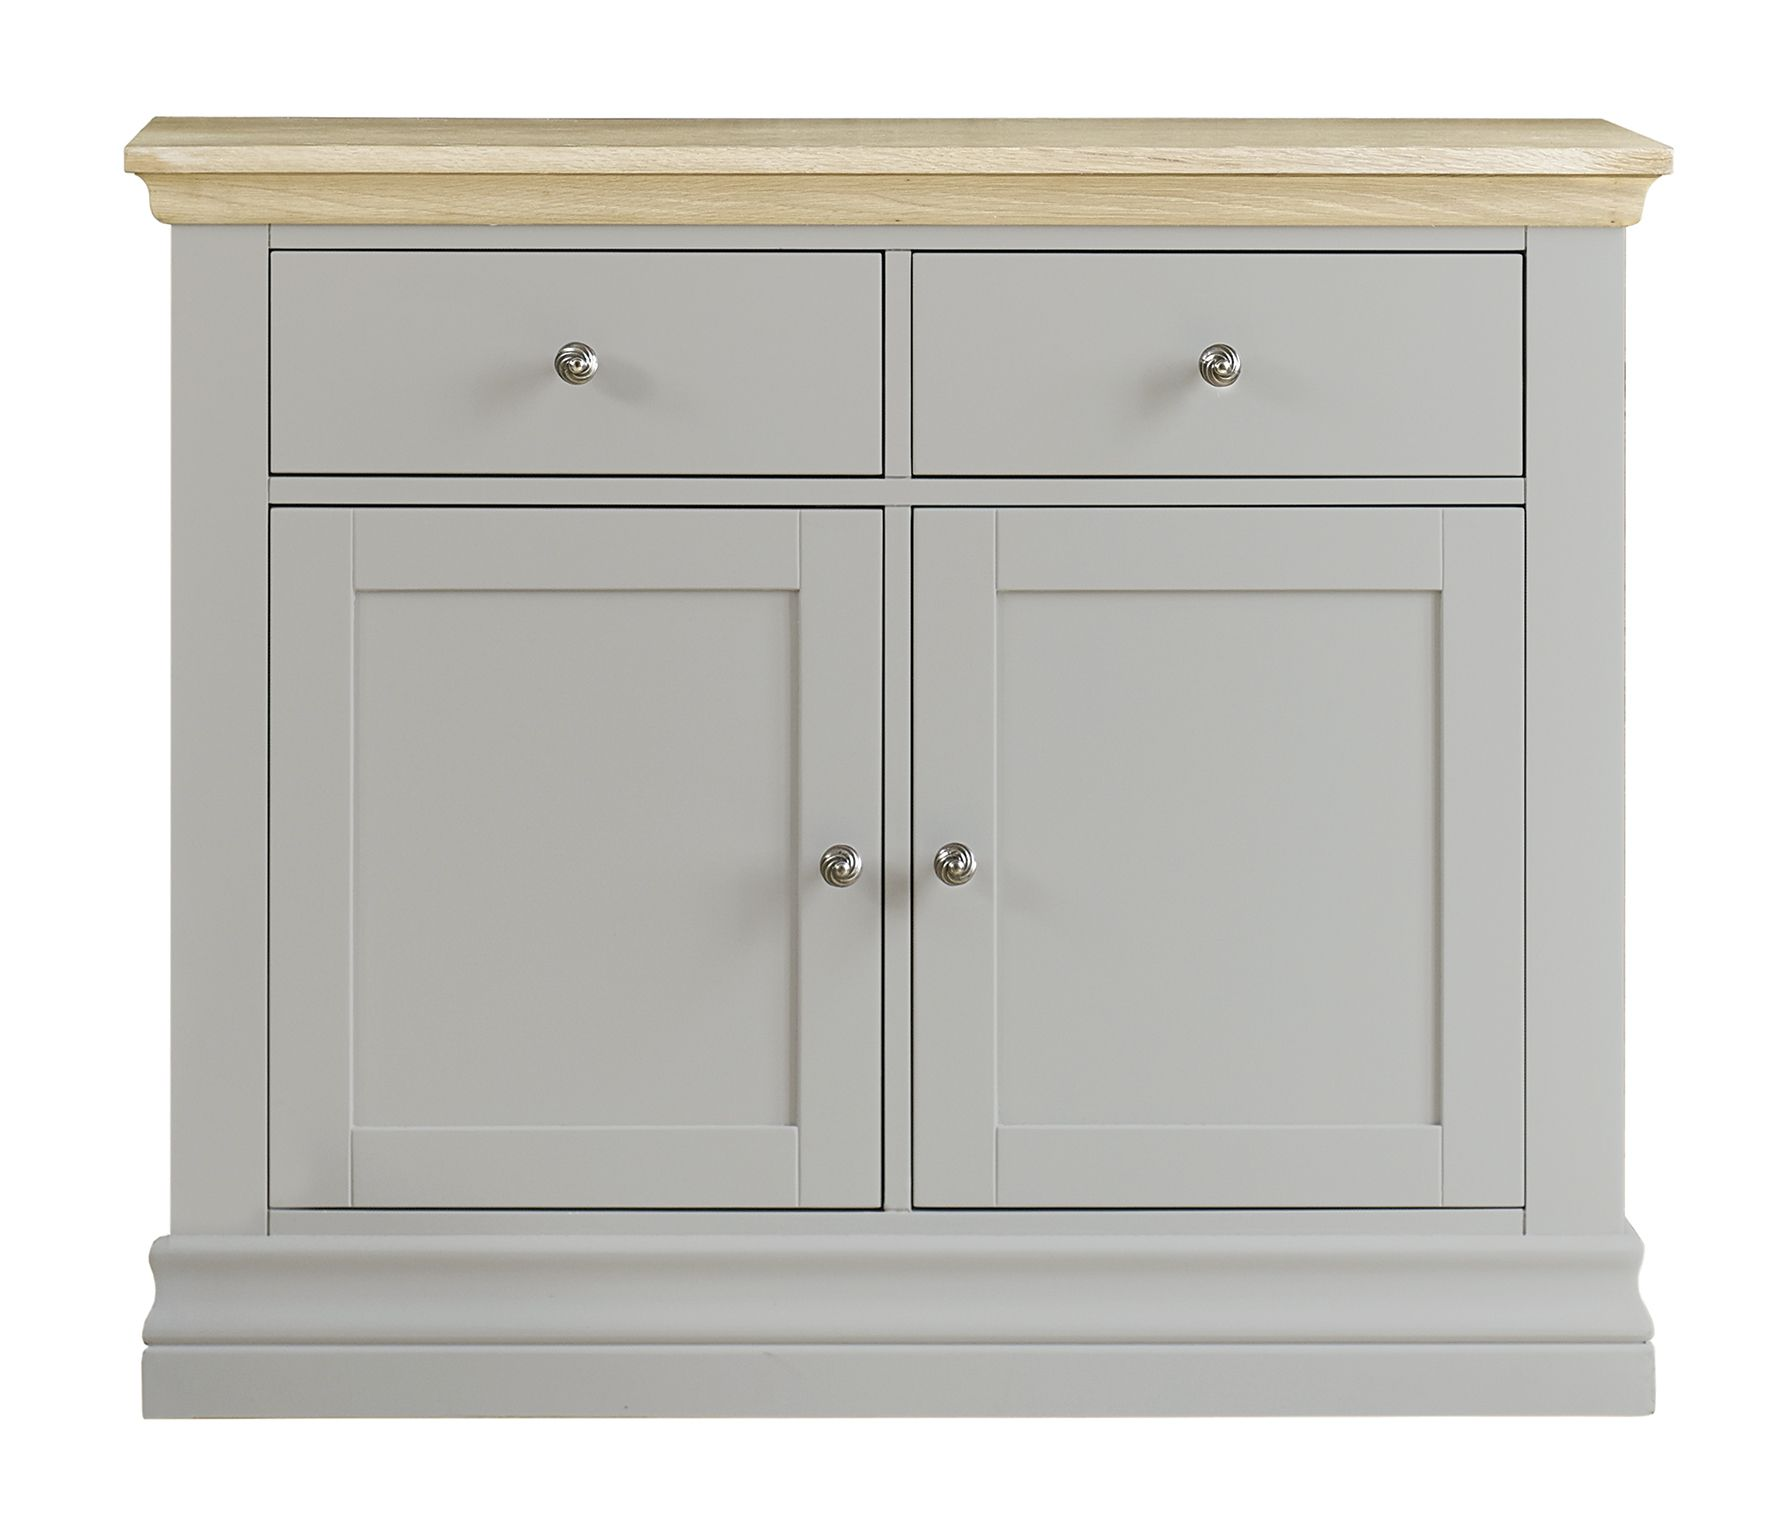 Corndell Annecy Small Sideboard Hand Painted In Haze A Blue Grey With Limed Oak Top Perfect Country Chic Fur Furniture Small Sideboard Dining Room Furniture